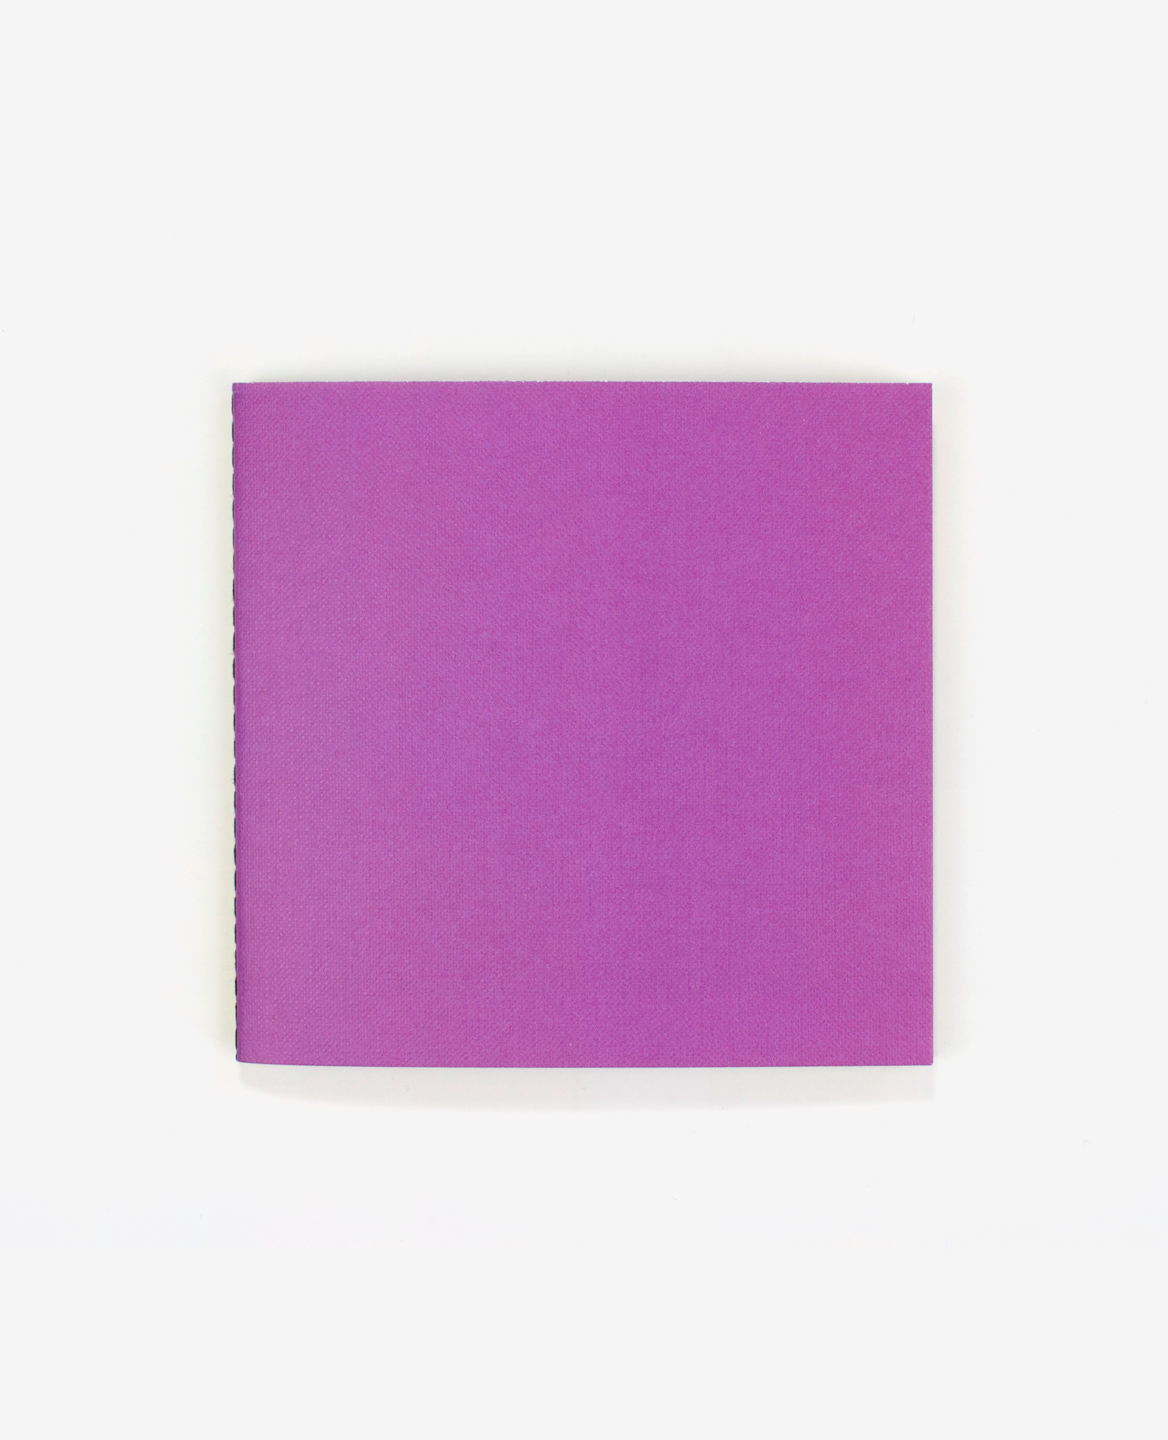 Violet cover of the book Colors by Antonio Ladrillo published by Éditions du livre